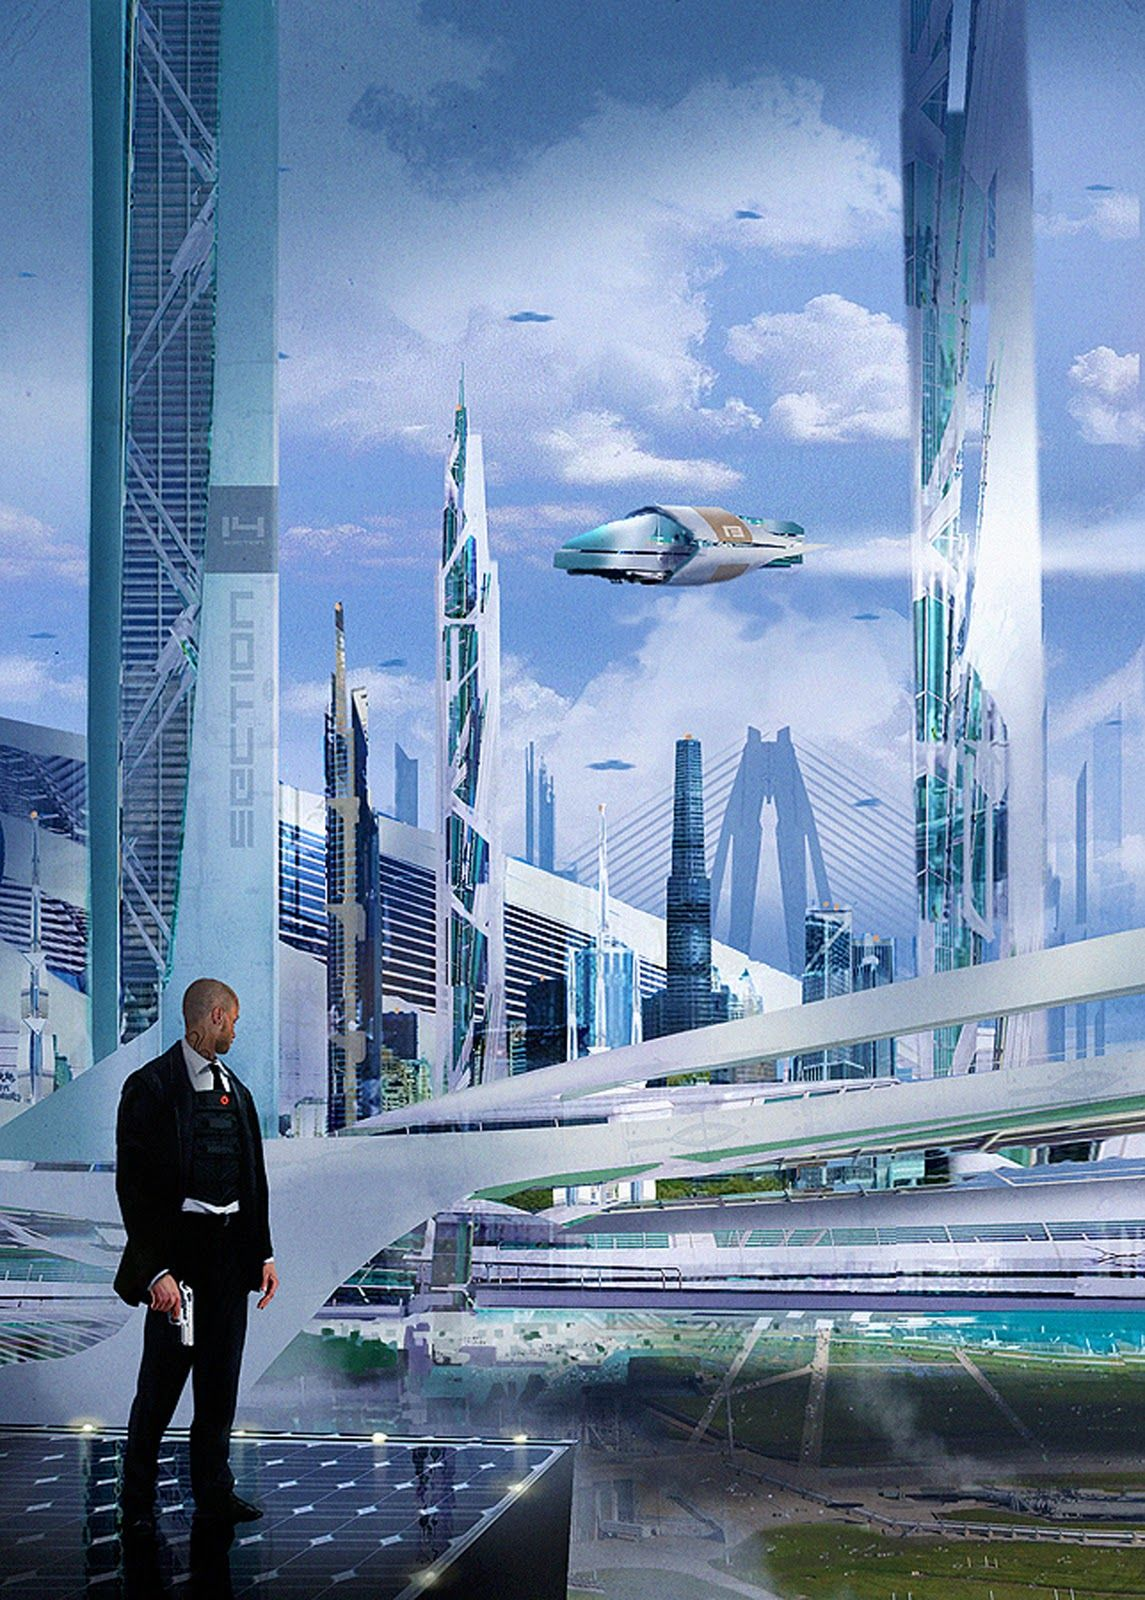 Sci Fi Buildings And Futuristic Cities Concept Designs